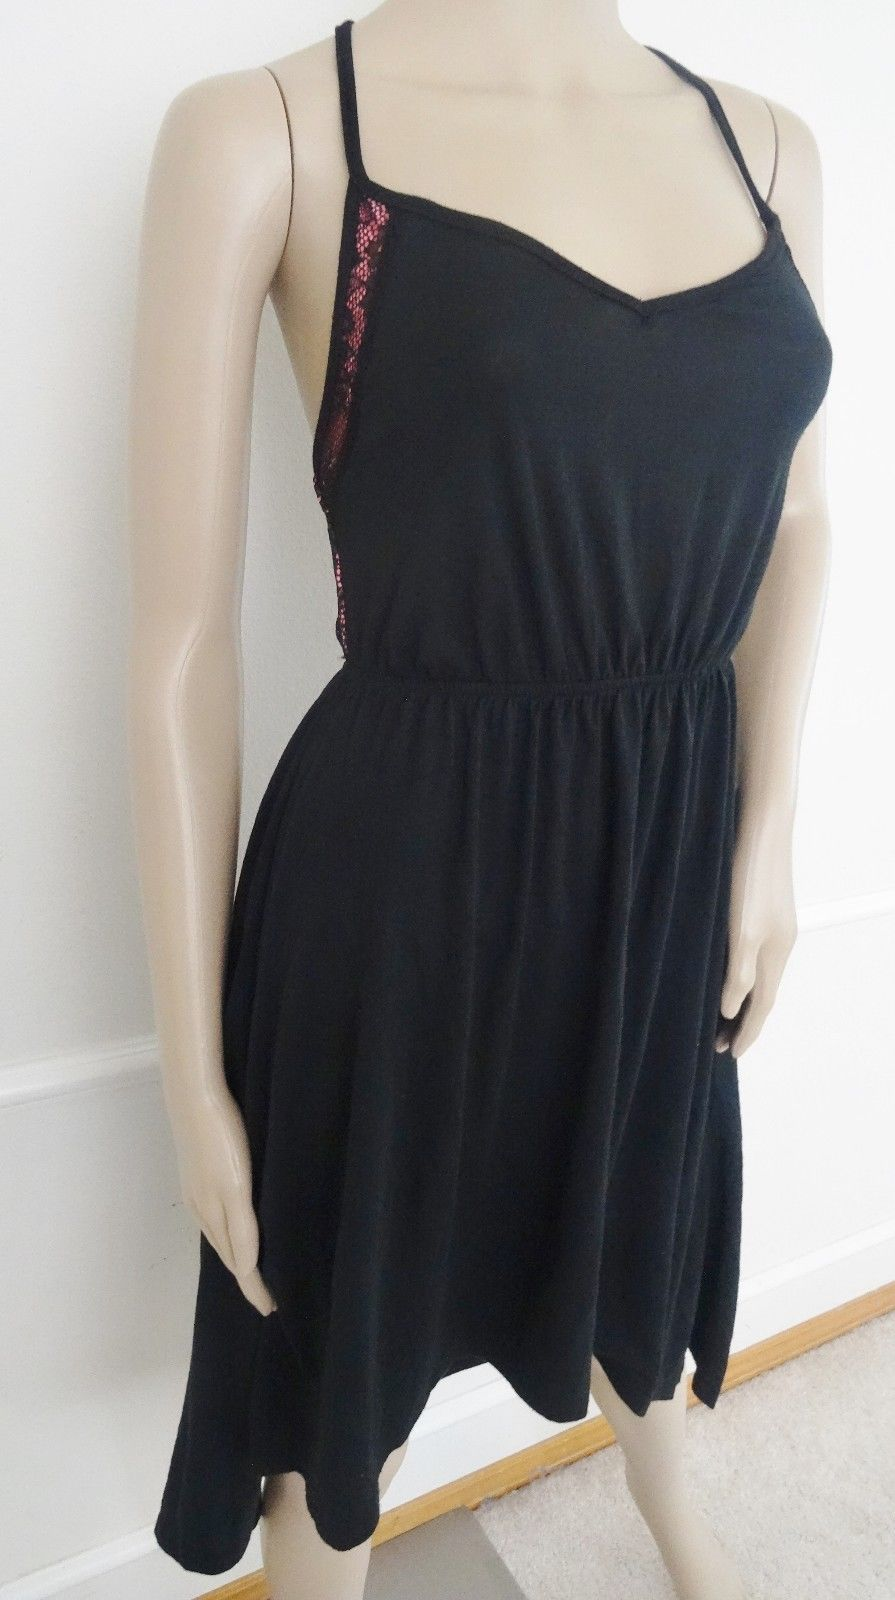 Nwt Planet Gold Cocktail Party Hi Low Dress Sz S Small Juniors Black Crocheted